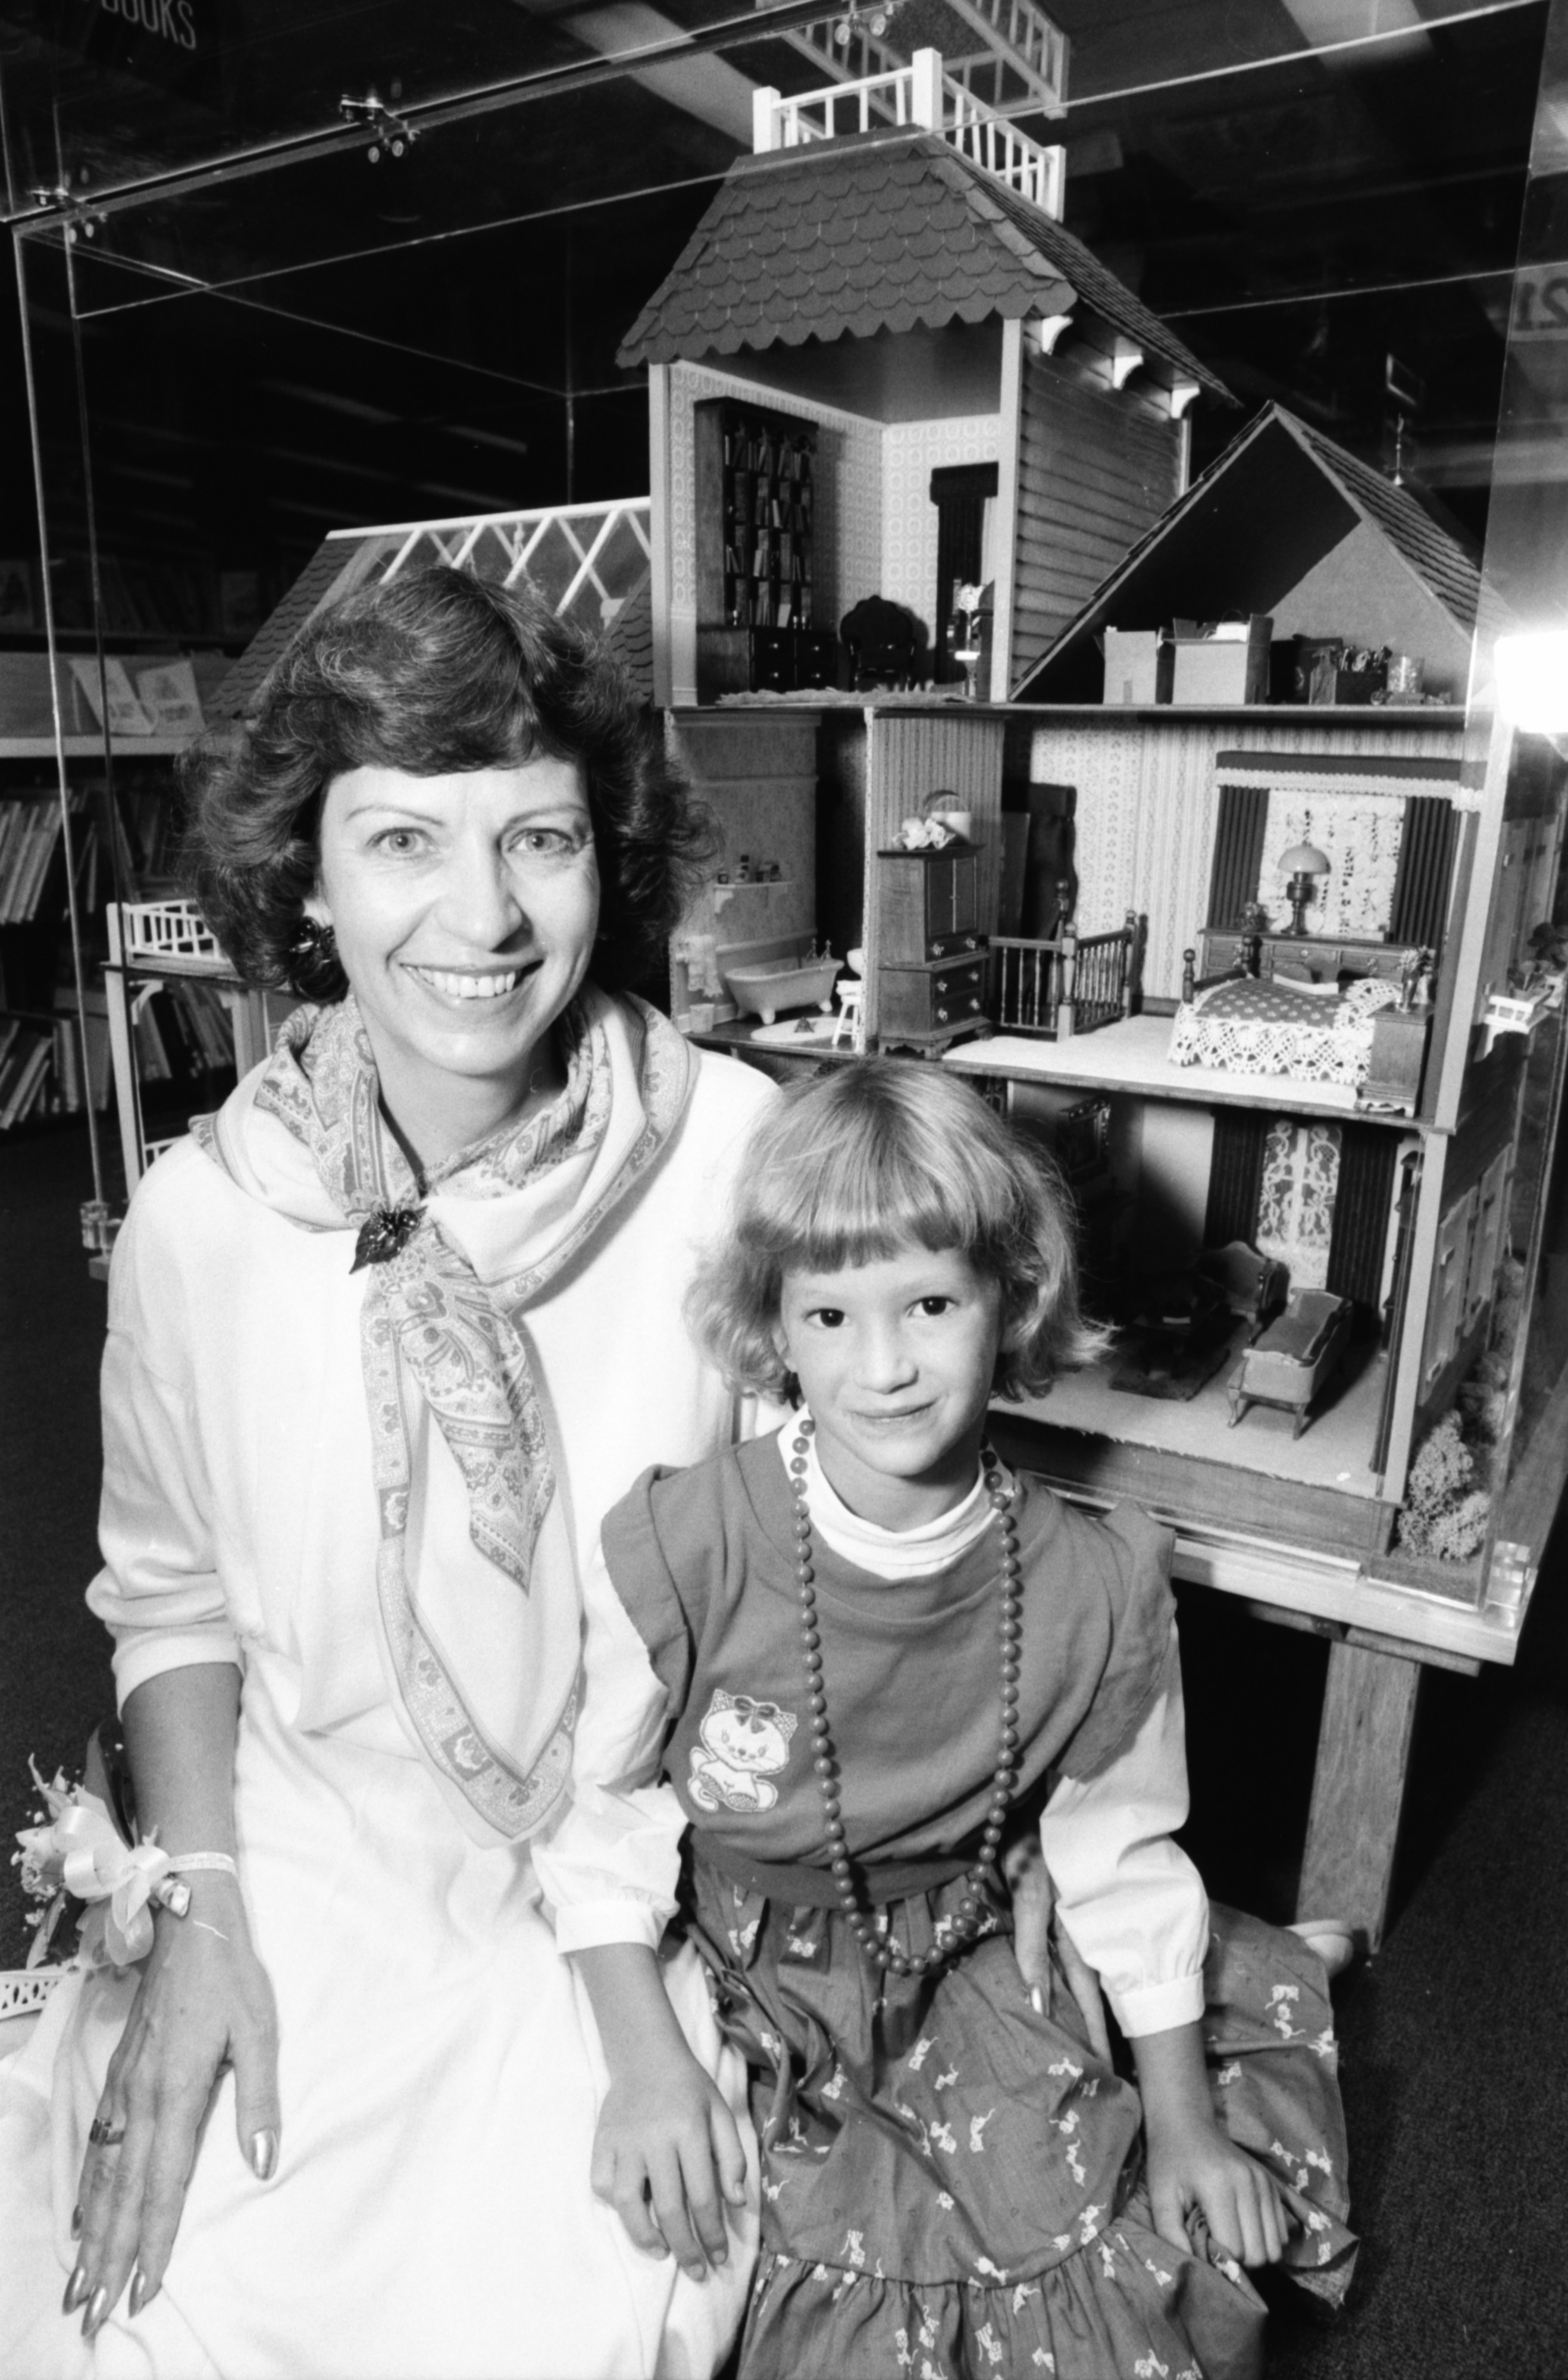 Kindergarten Teacher Barbara White Has Donated Doll House to Ann Arbor Public Library, August 1987 image